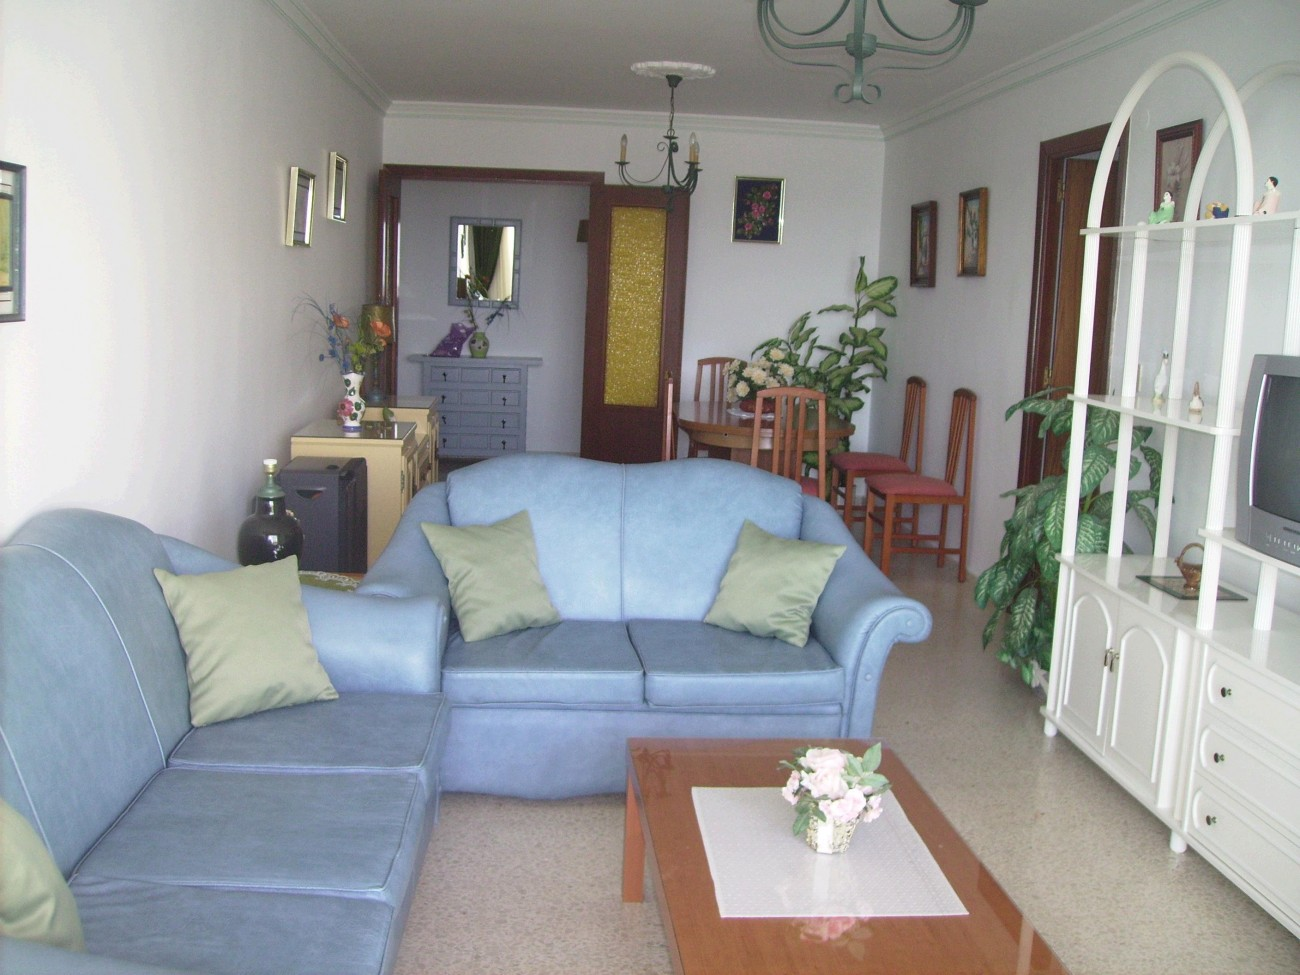 Apartment for rent in Nerja, Málaga, Spain